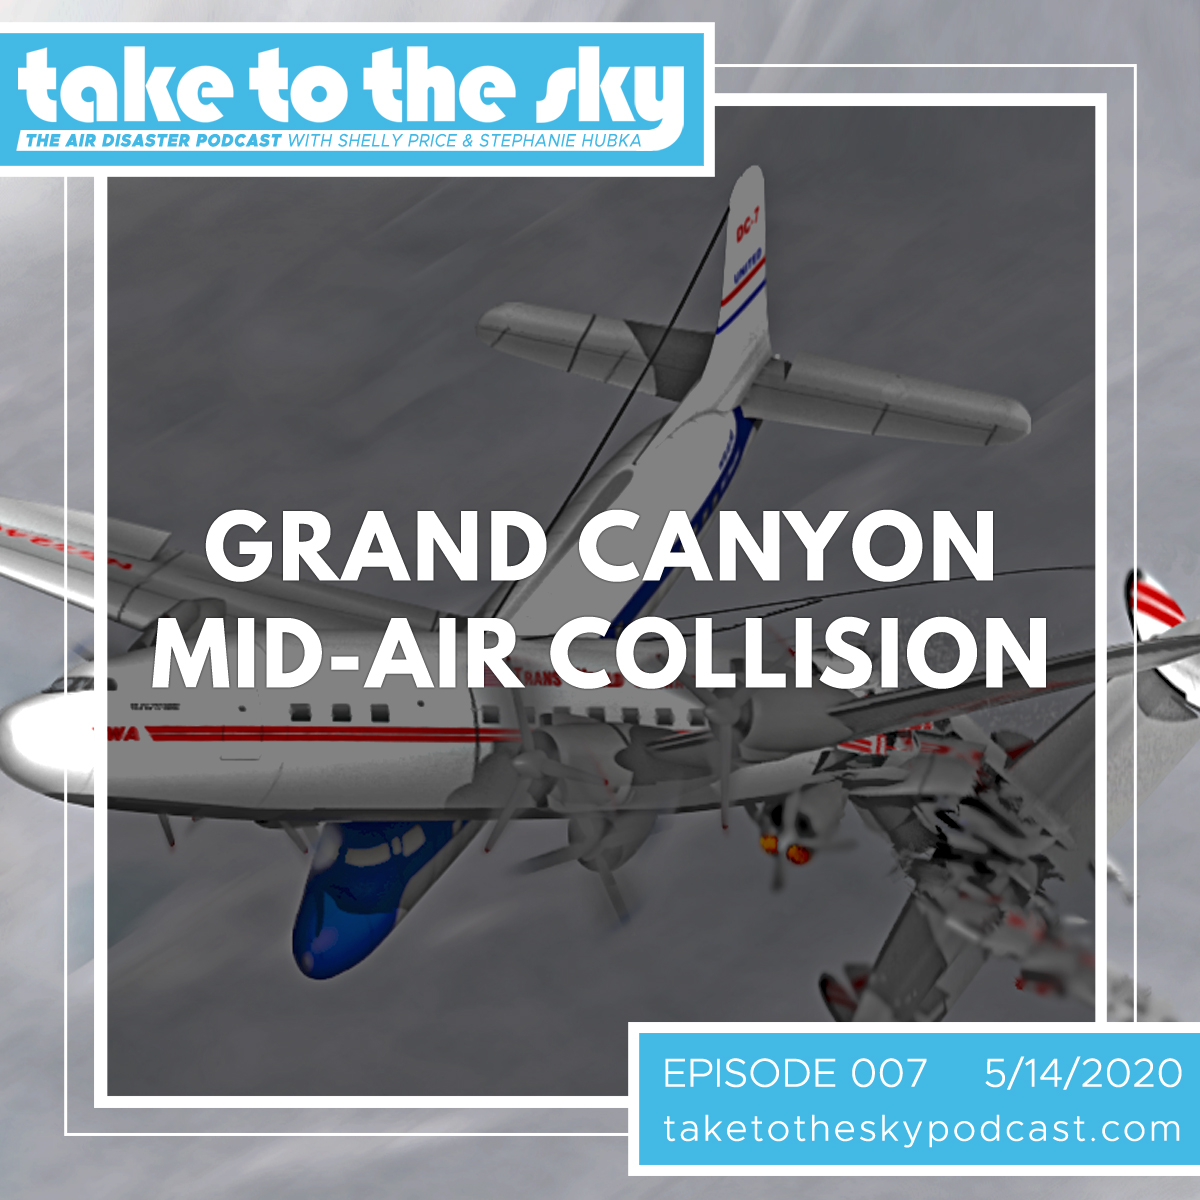 Take to the Sky Episode 007: Grand Canyon Mid-Air Collision